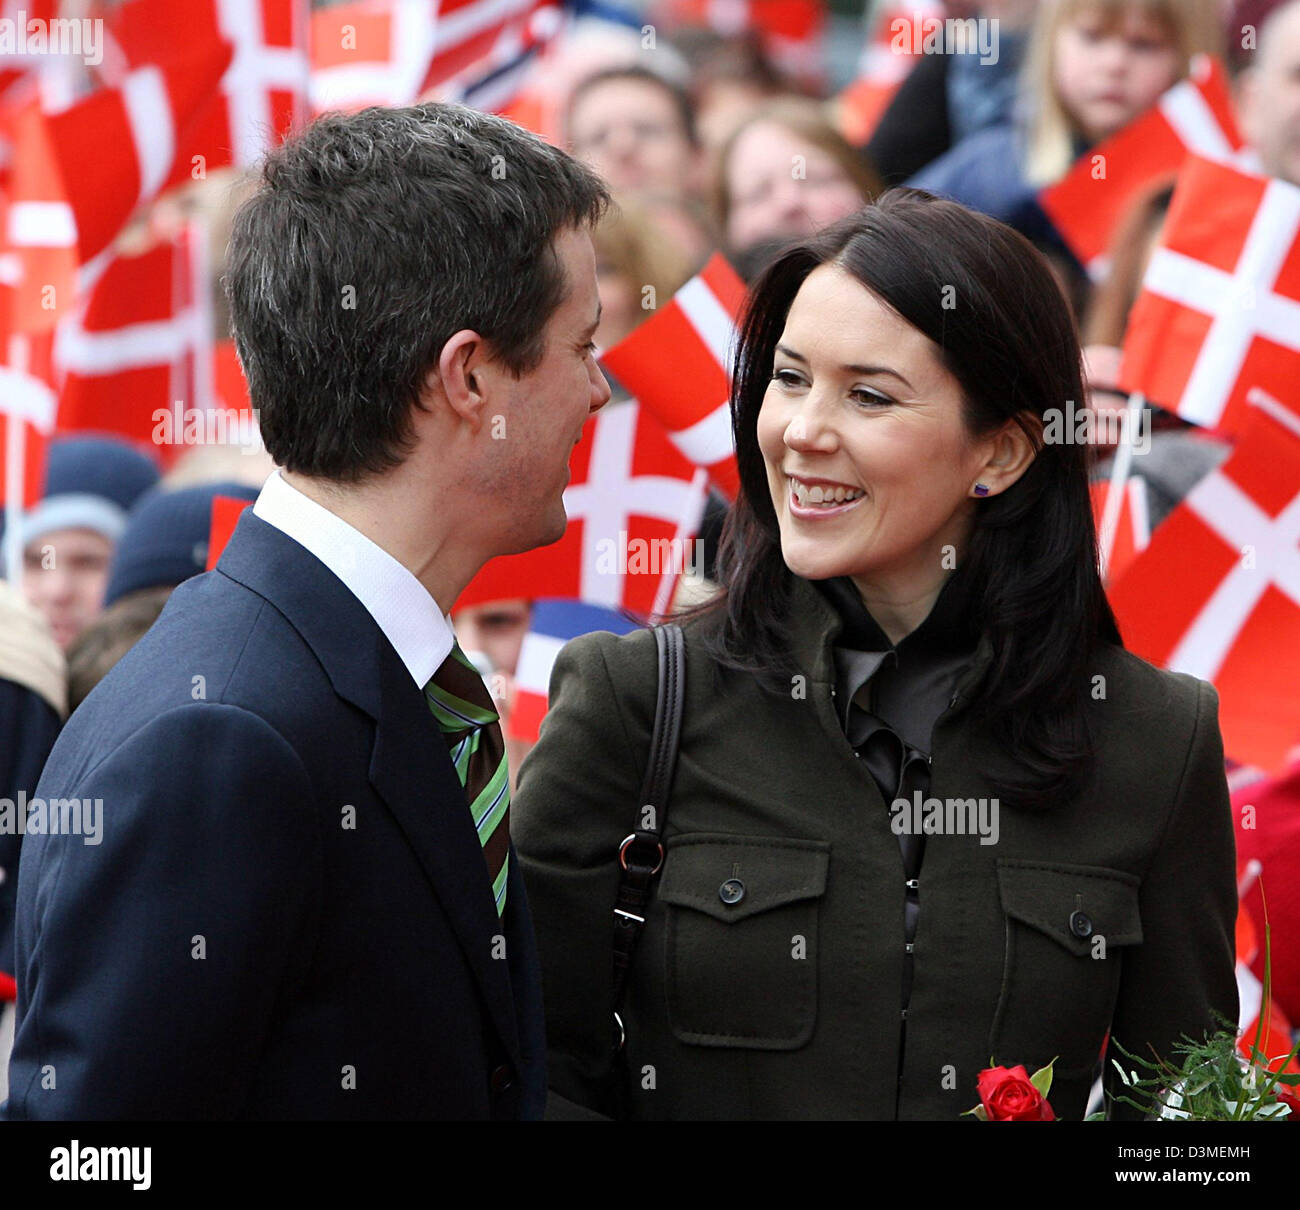 Danish Crown Prince Frederik and and his wife Princess Mary of Denmark smile as they look at each other on arrival - Stock Image